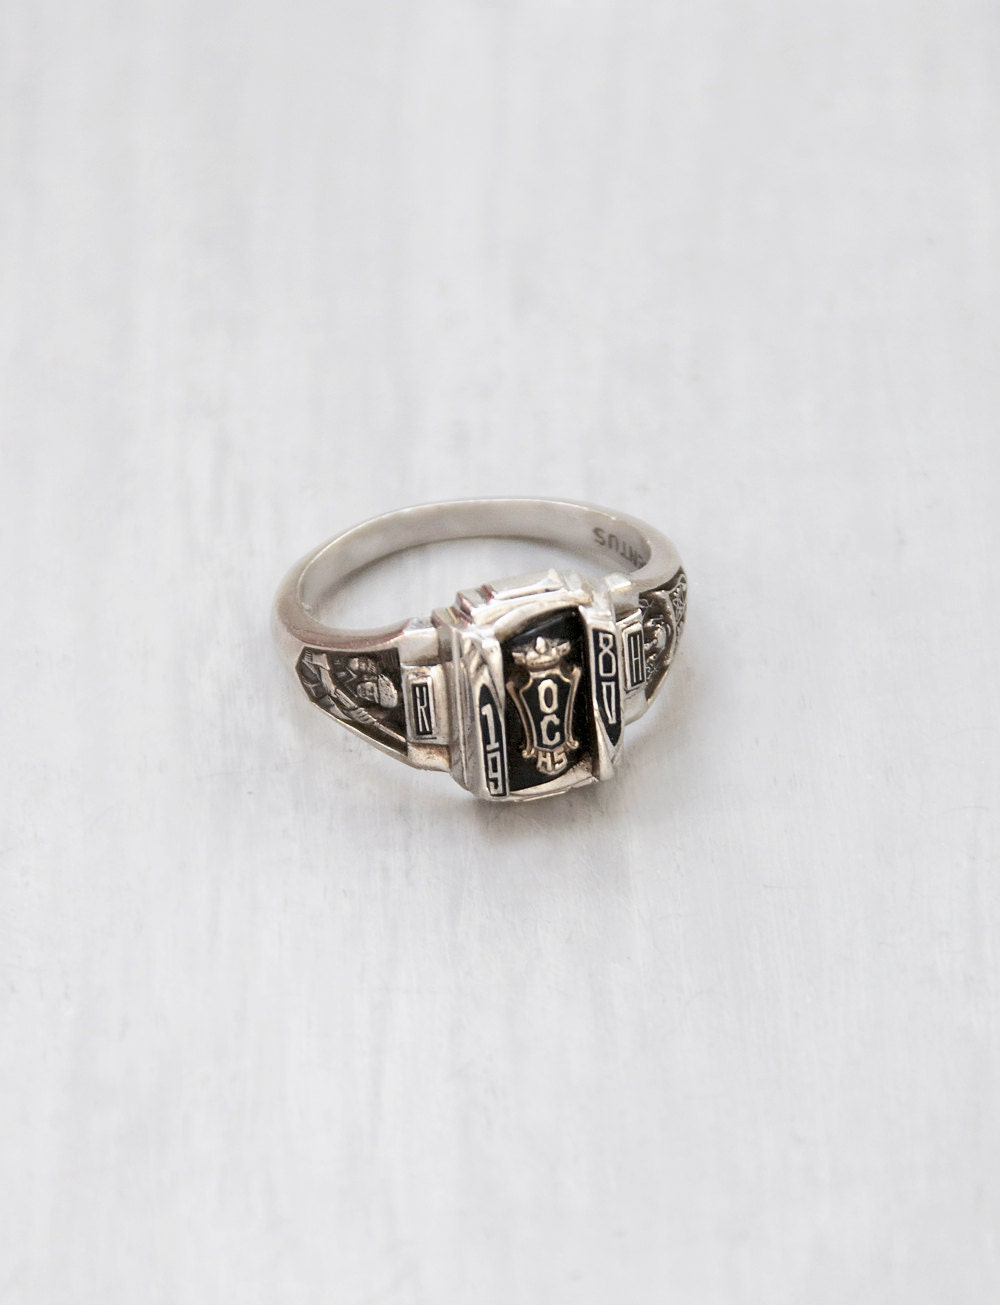 Vintage 1980 Class Ring Argentus Silver Size by CuriosityCabinet